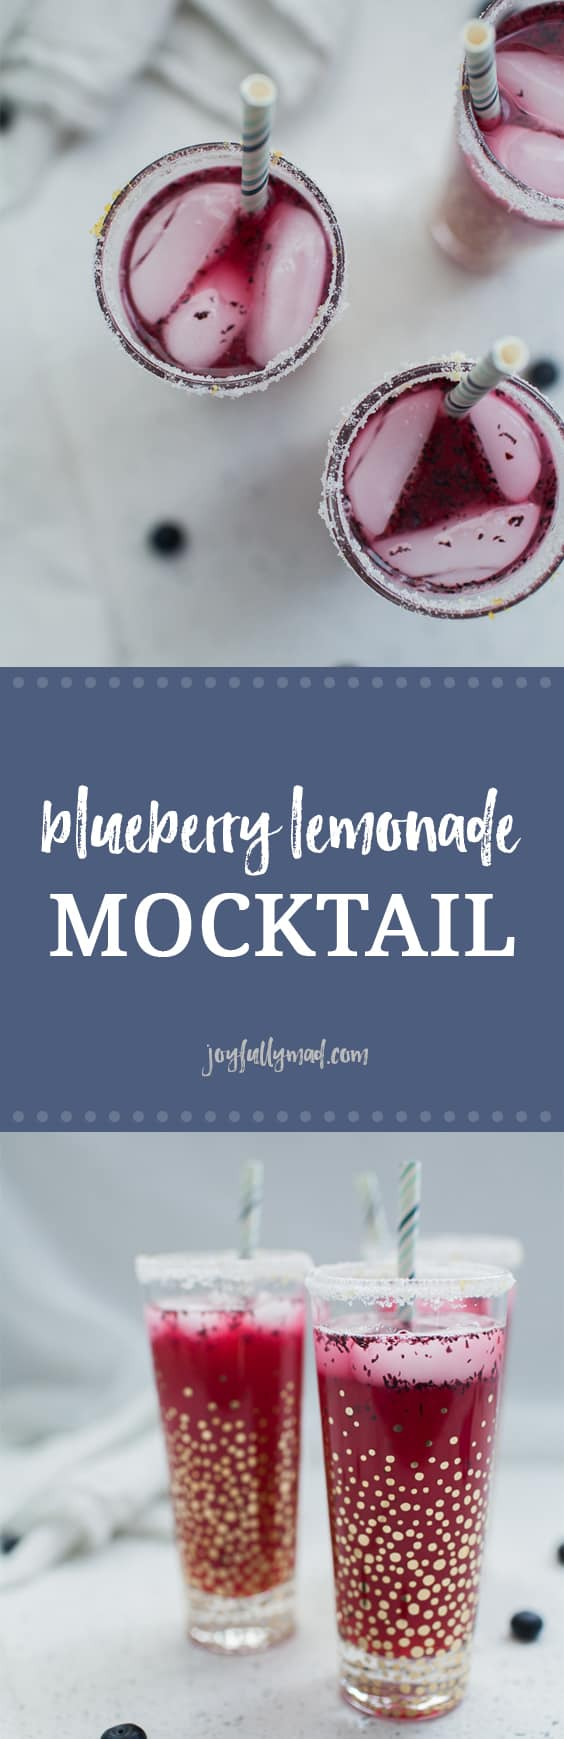 If you're looking for the perfect summer mocktail, this blueberry lemonade mocktail is sure to hit the spot! Whether you need a fancy drink for a party or just because, this blueberry lemonade mocktail is easy to make and has the perfect blend of tart and sweetness. blueberry lemonade | blueberry mocktail | blueberry drink | blueberry cocktail | mocktails | baby shower drink | party mocktail